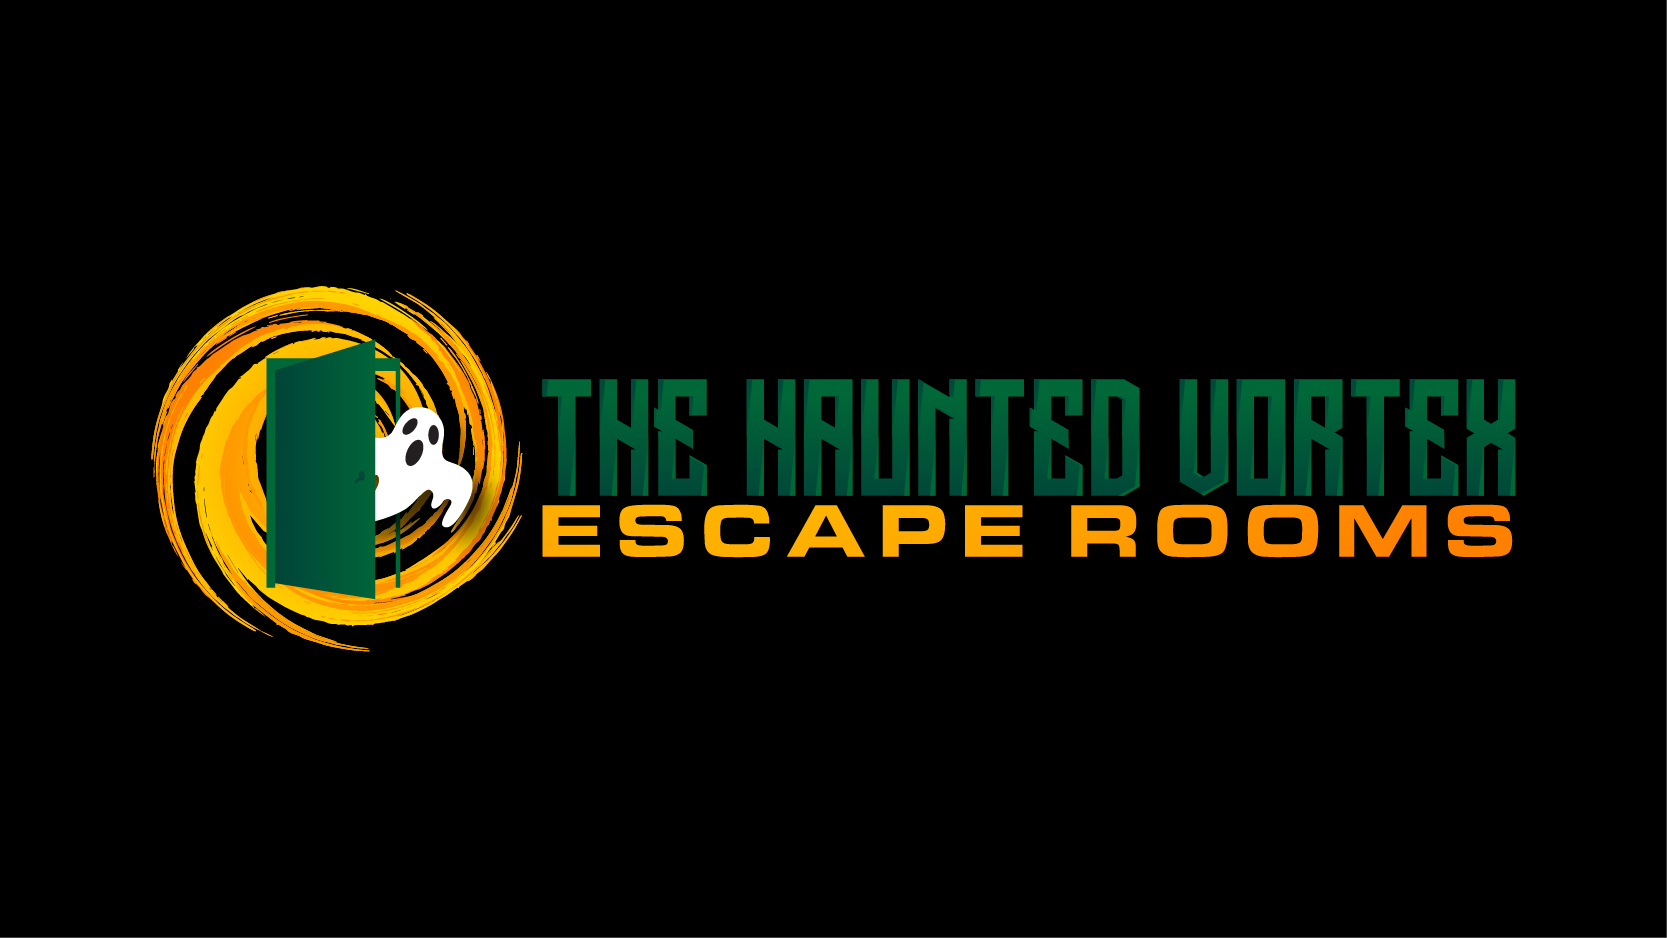 Into the Vortex Escape Rooms - All rooms are PRIVATE